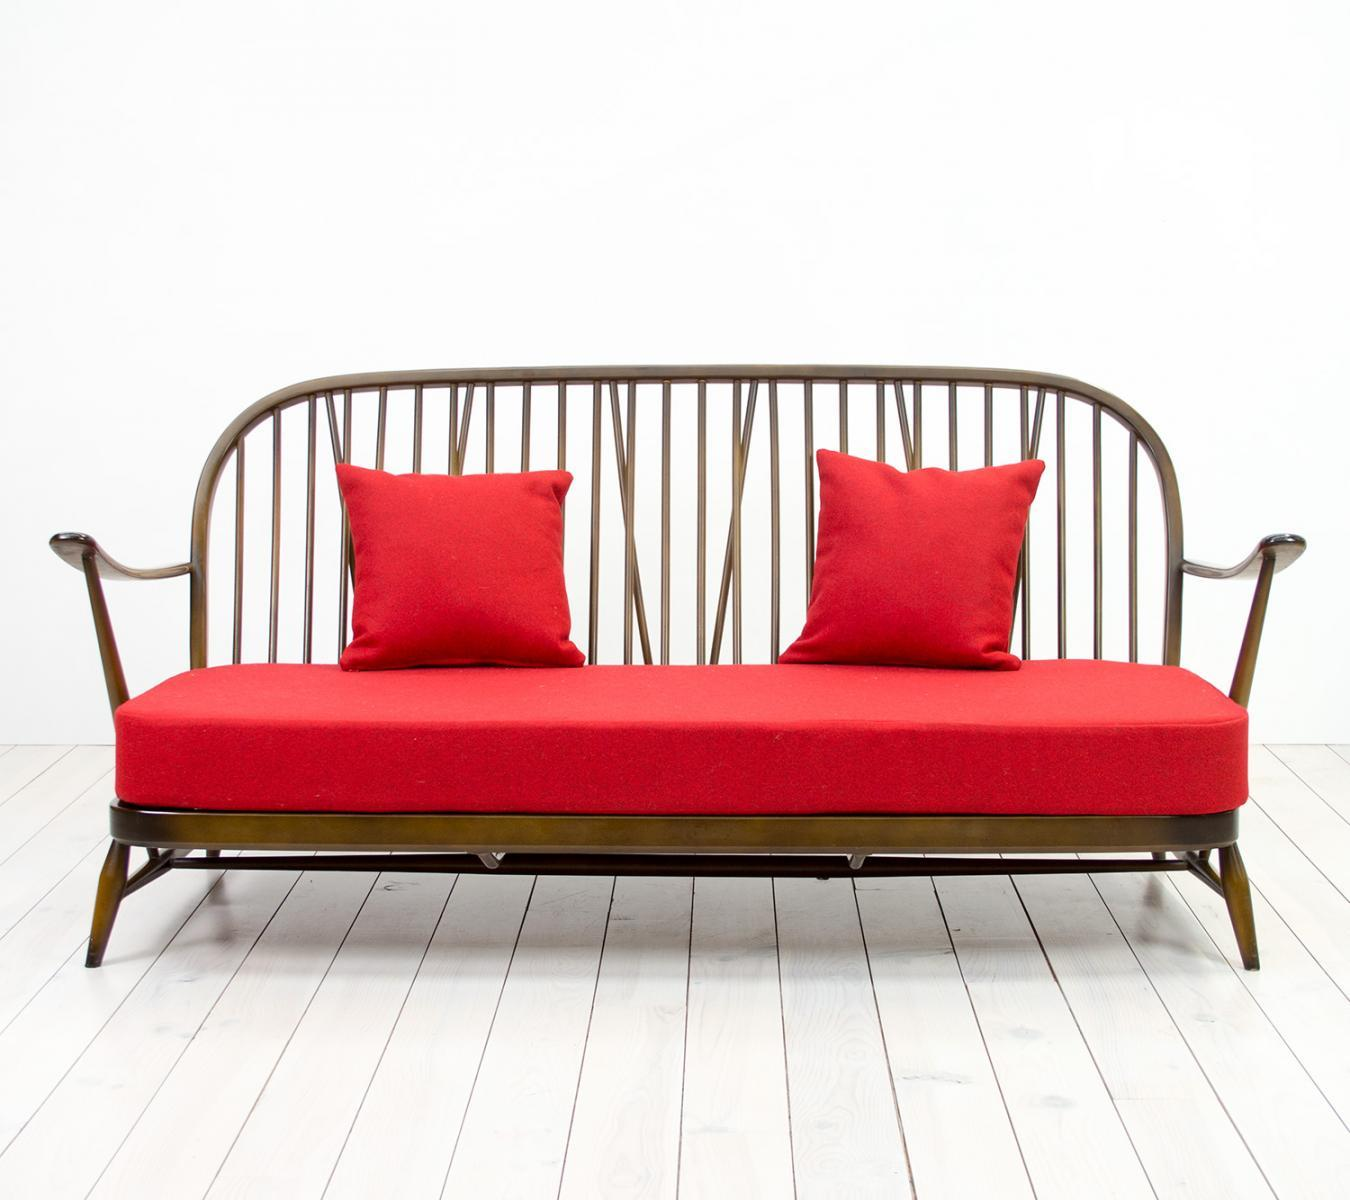 red-windsor-three-seater-sofa-from-ercol-1950s